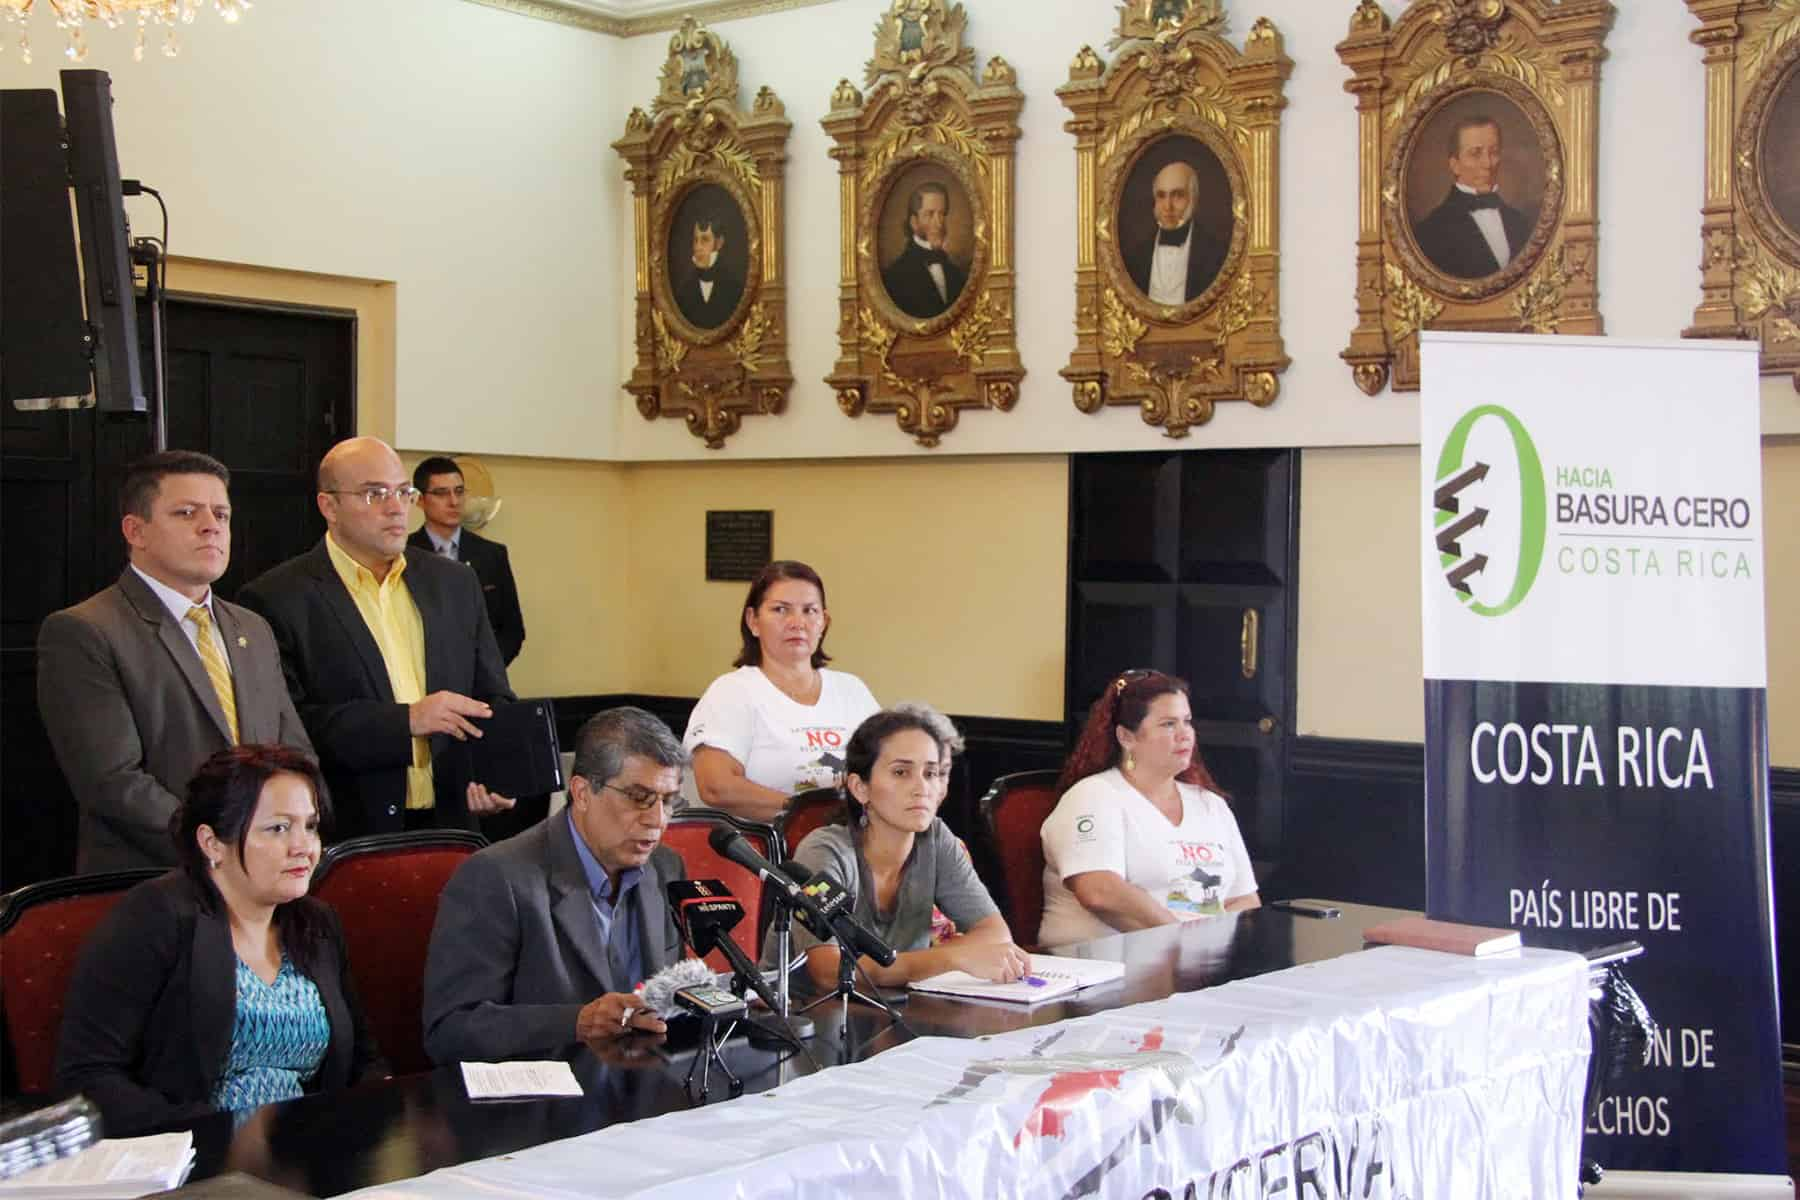 Groups opposing gasification in Costa Rica, Aug. 4 2015